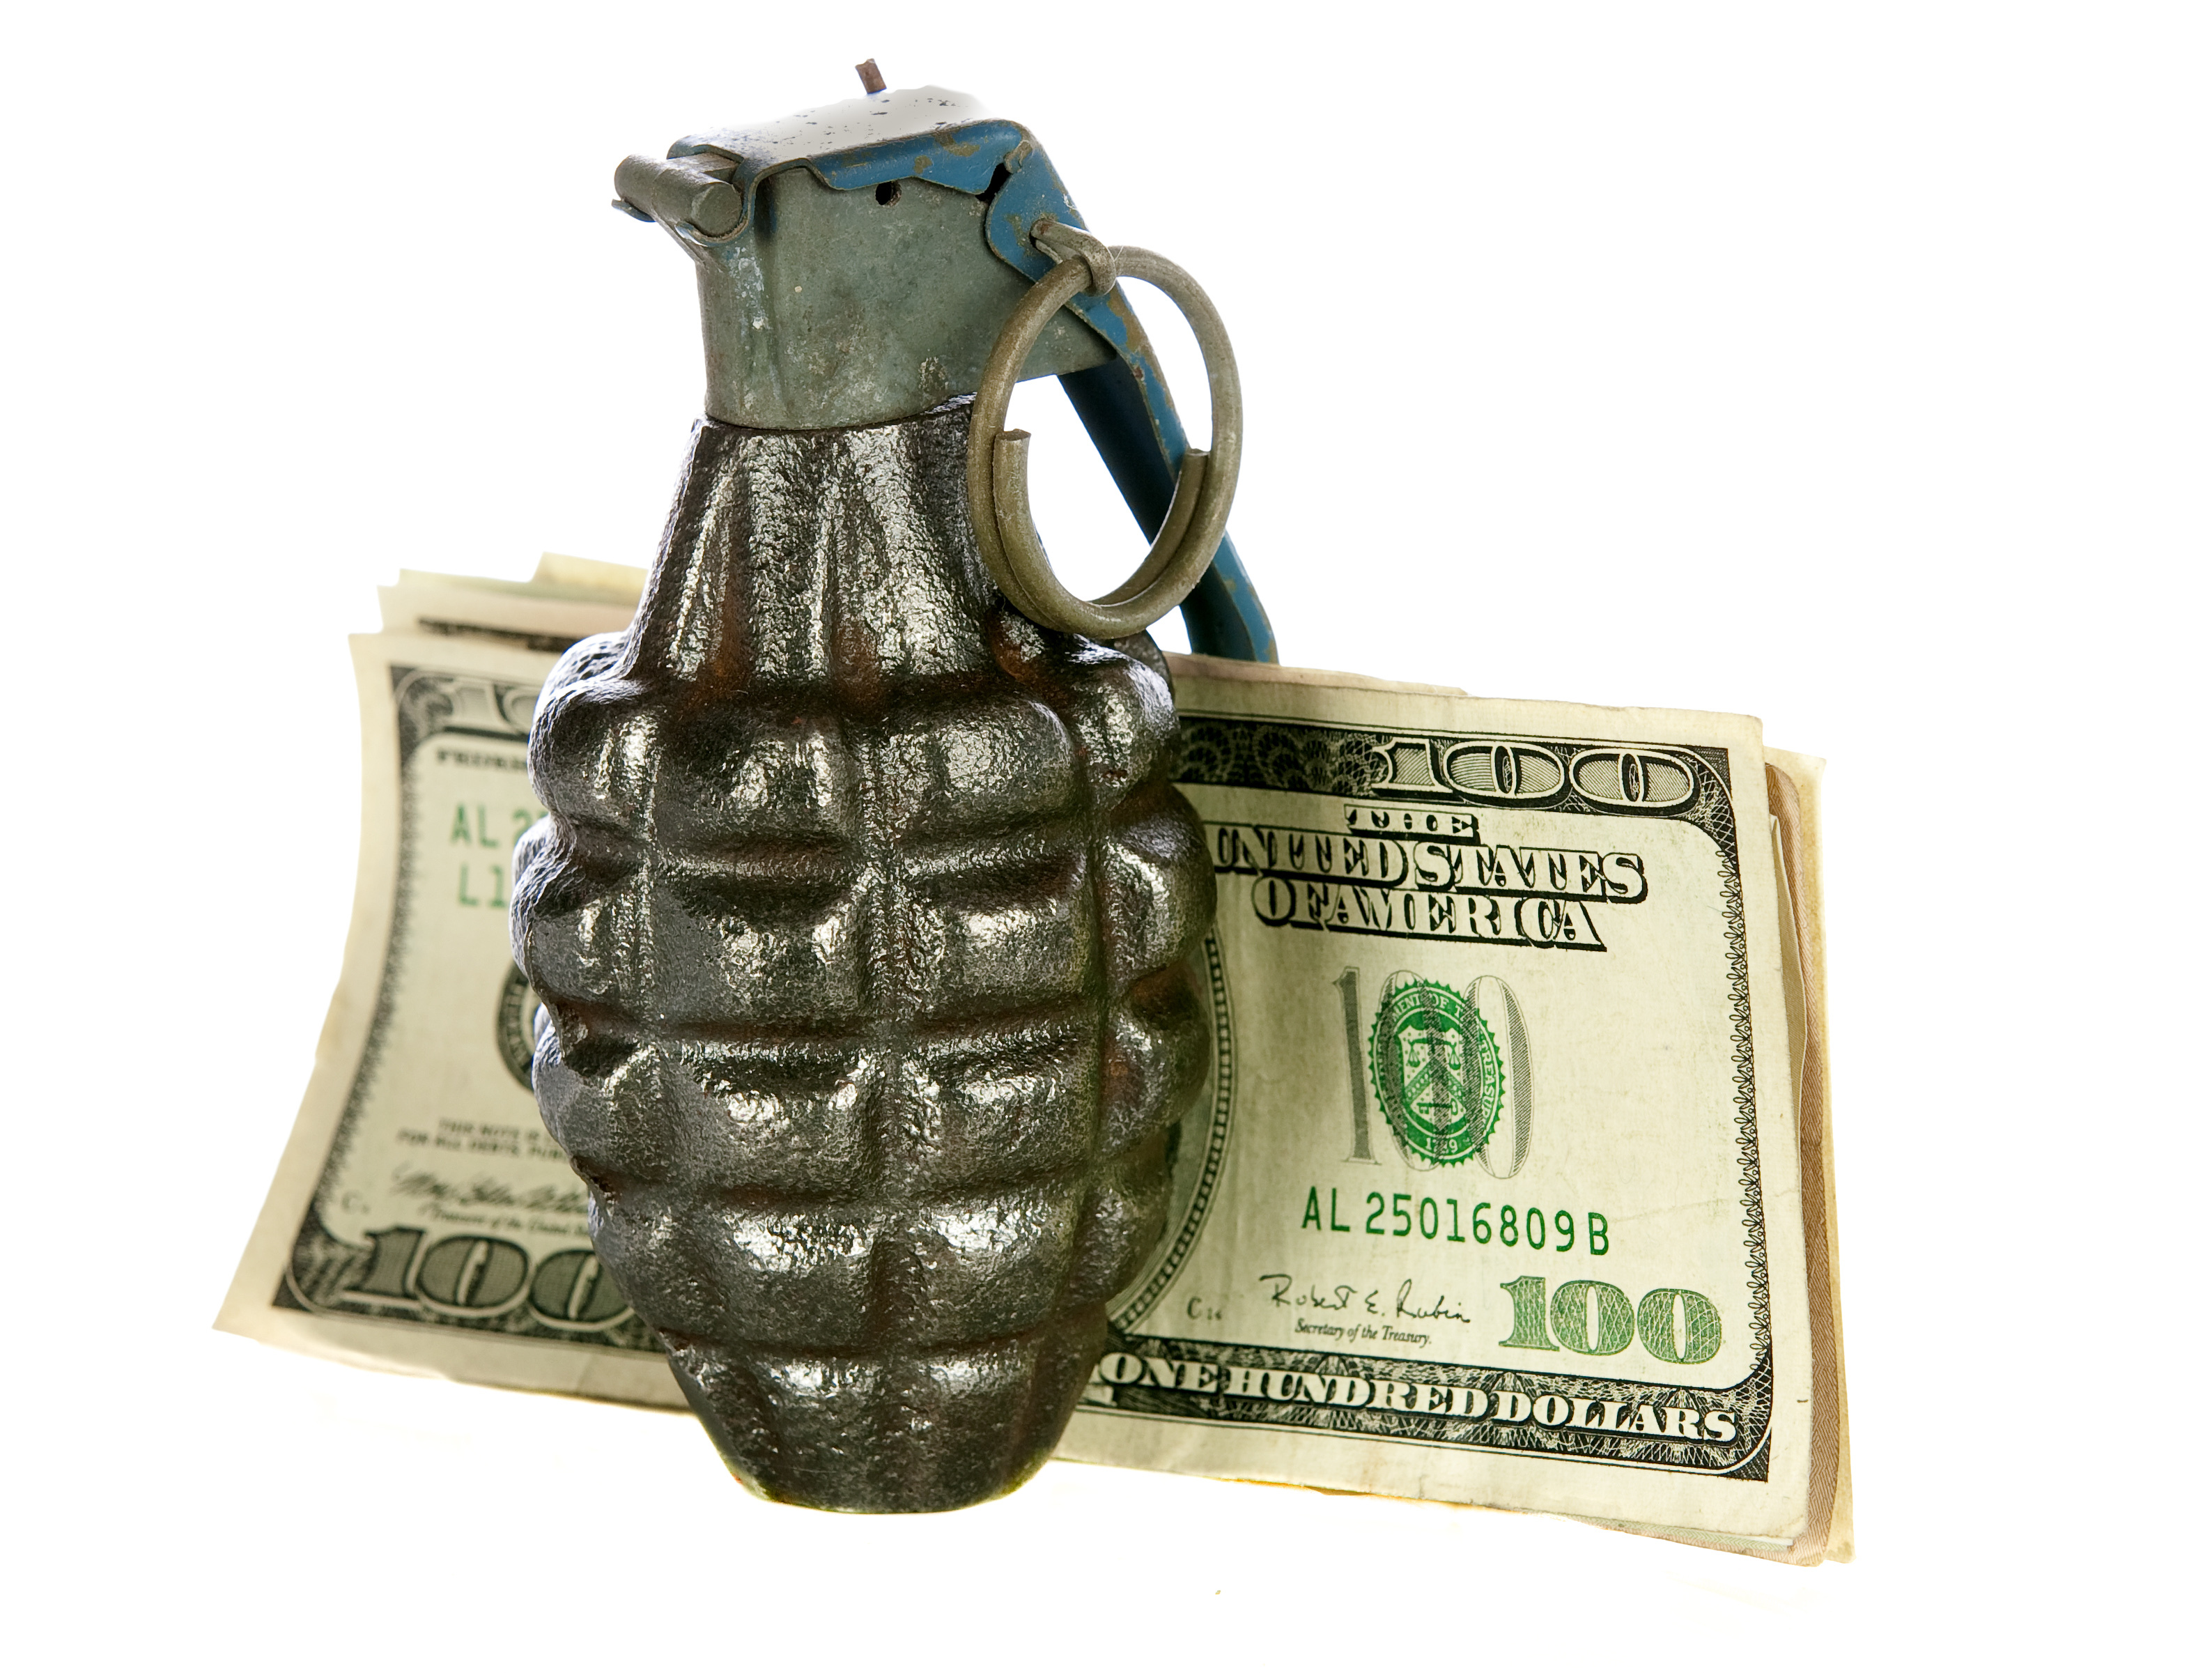 Grenade and money